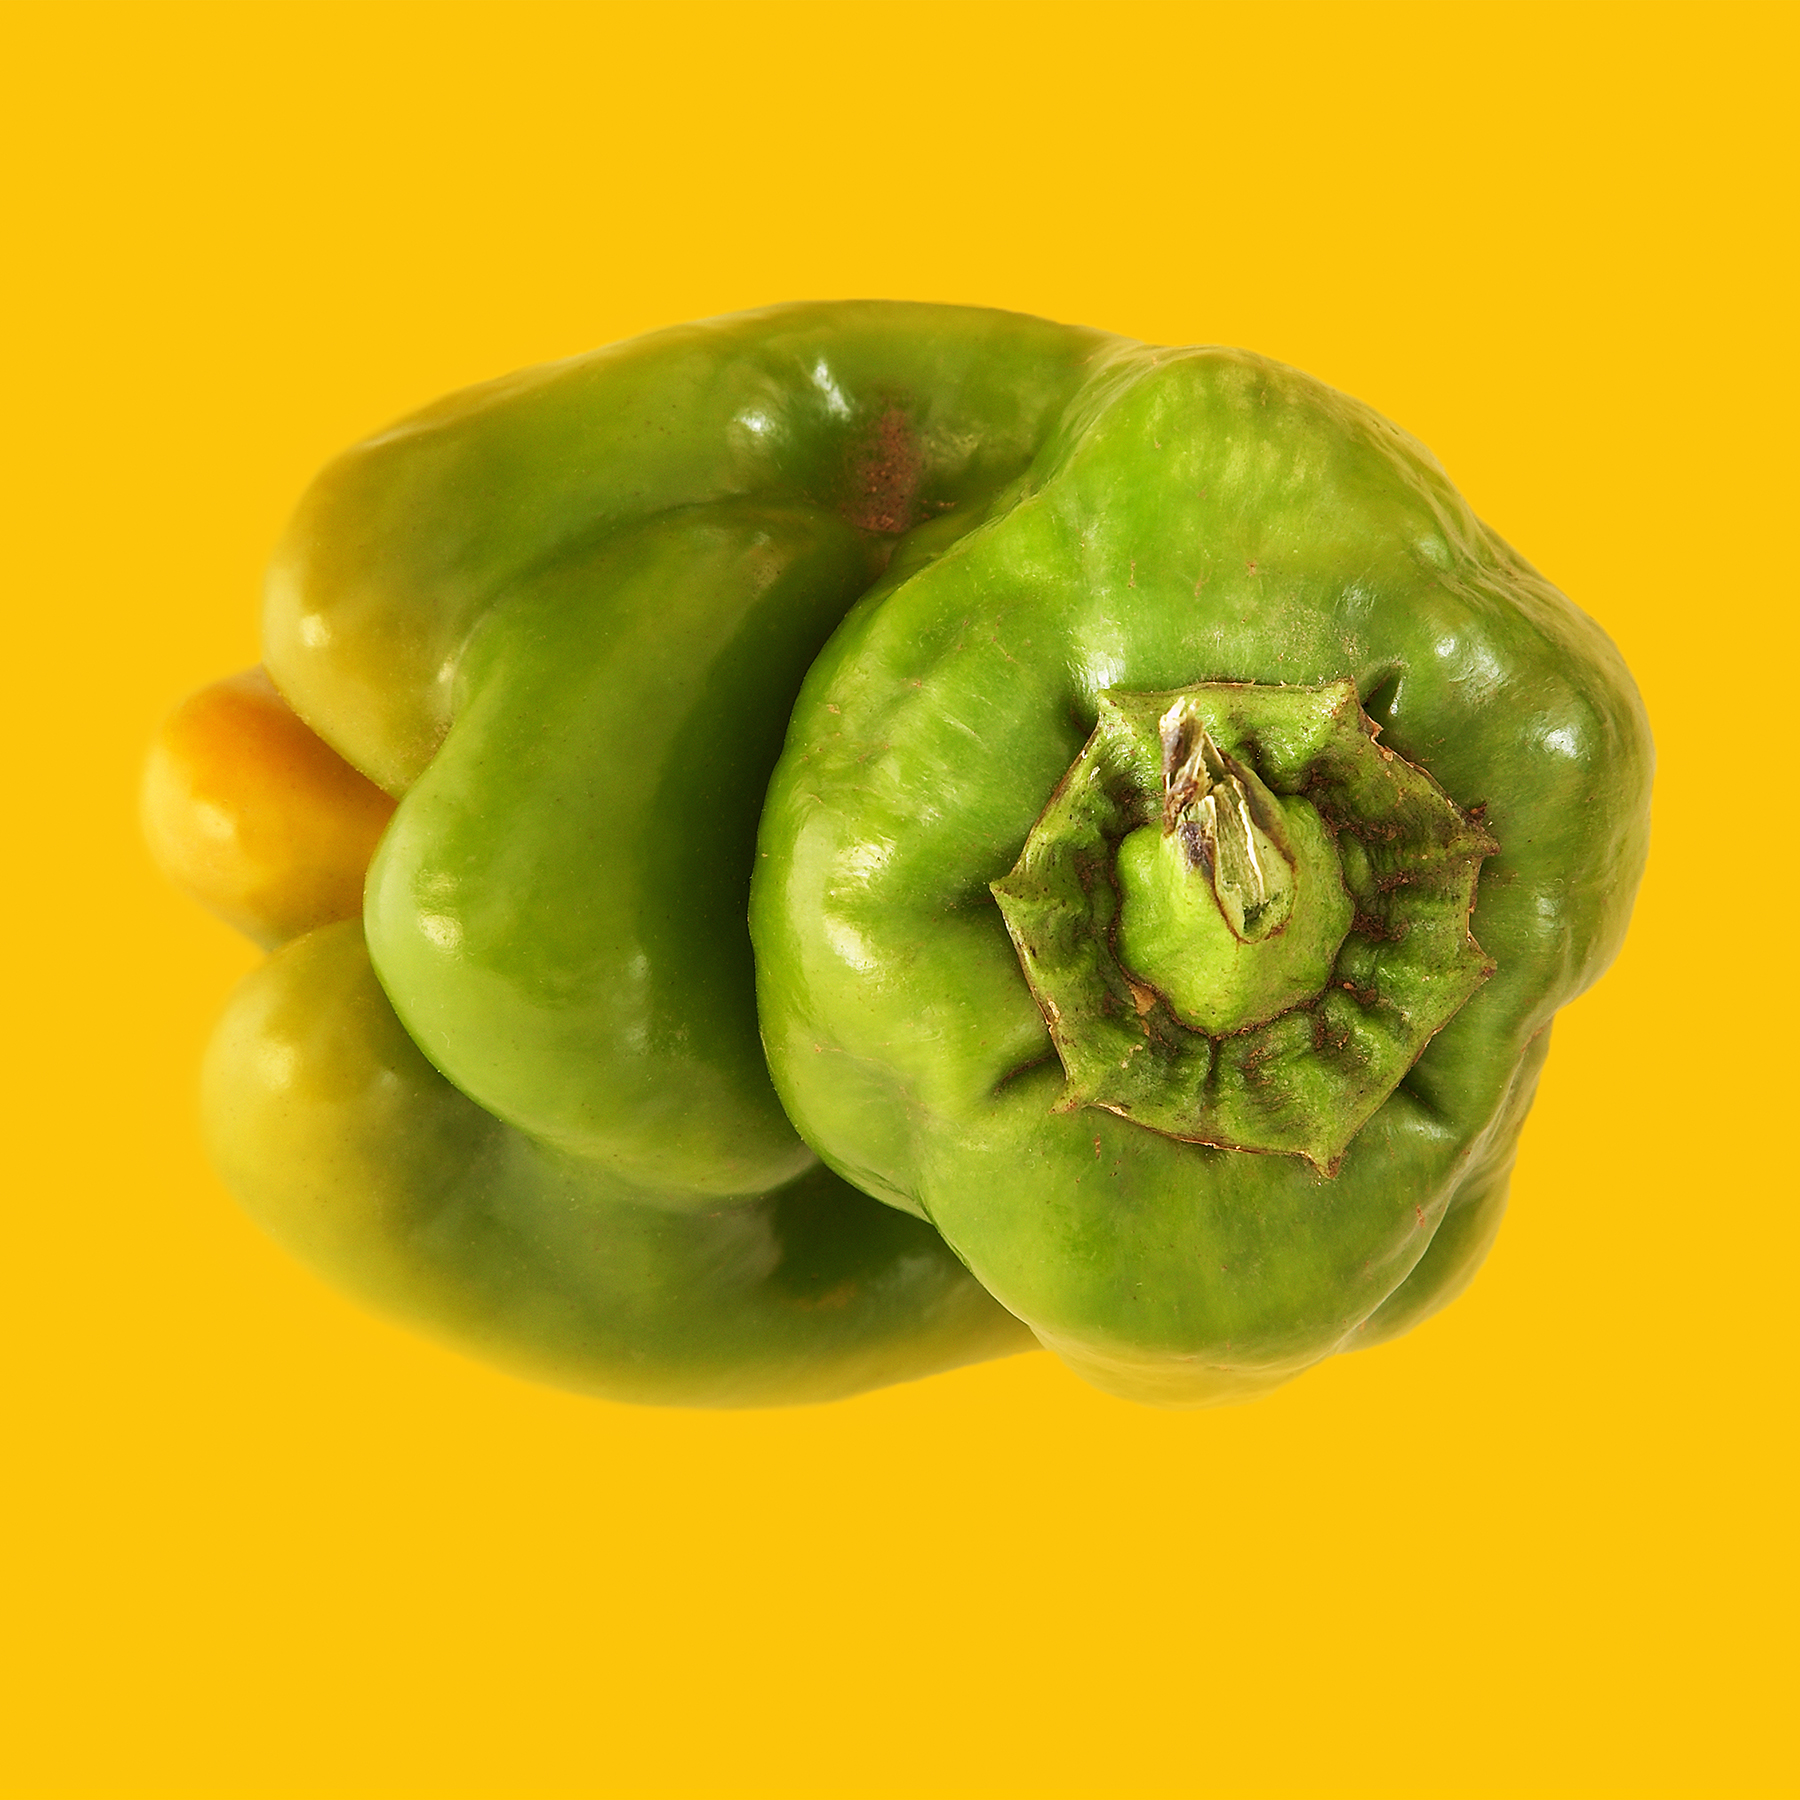 PEPPER-GREEN-ORGANIC-ON-ORANGE-02-©-JONATHAN-R.-BECKERMAN-PHOTOGRAPHY.jpg